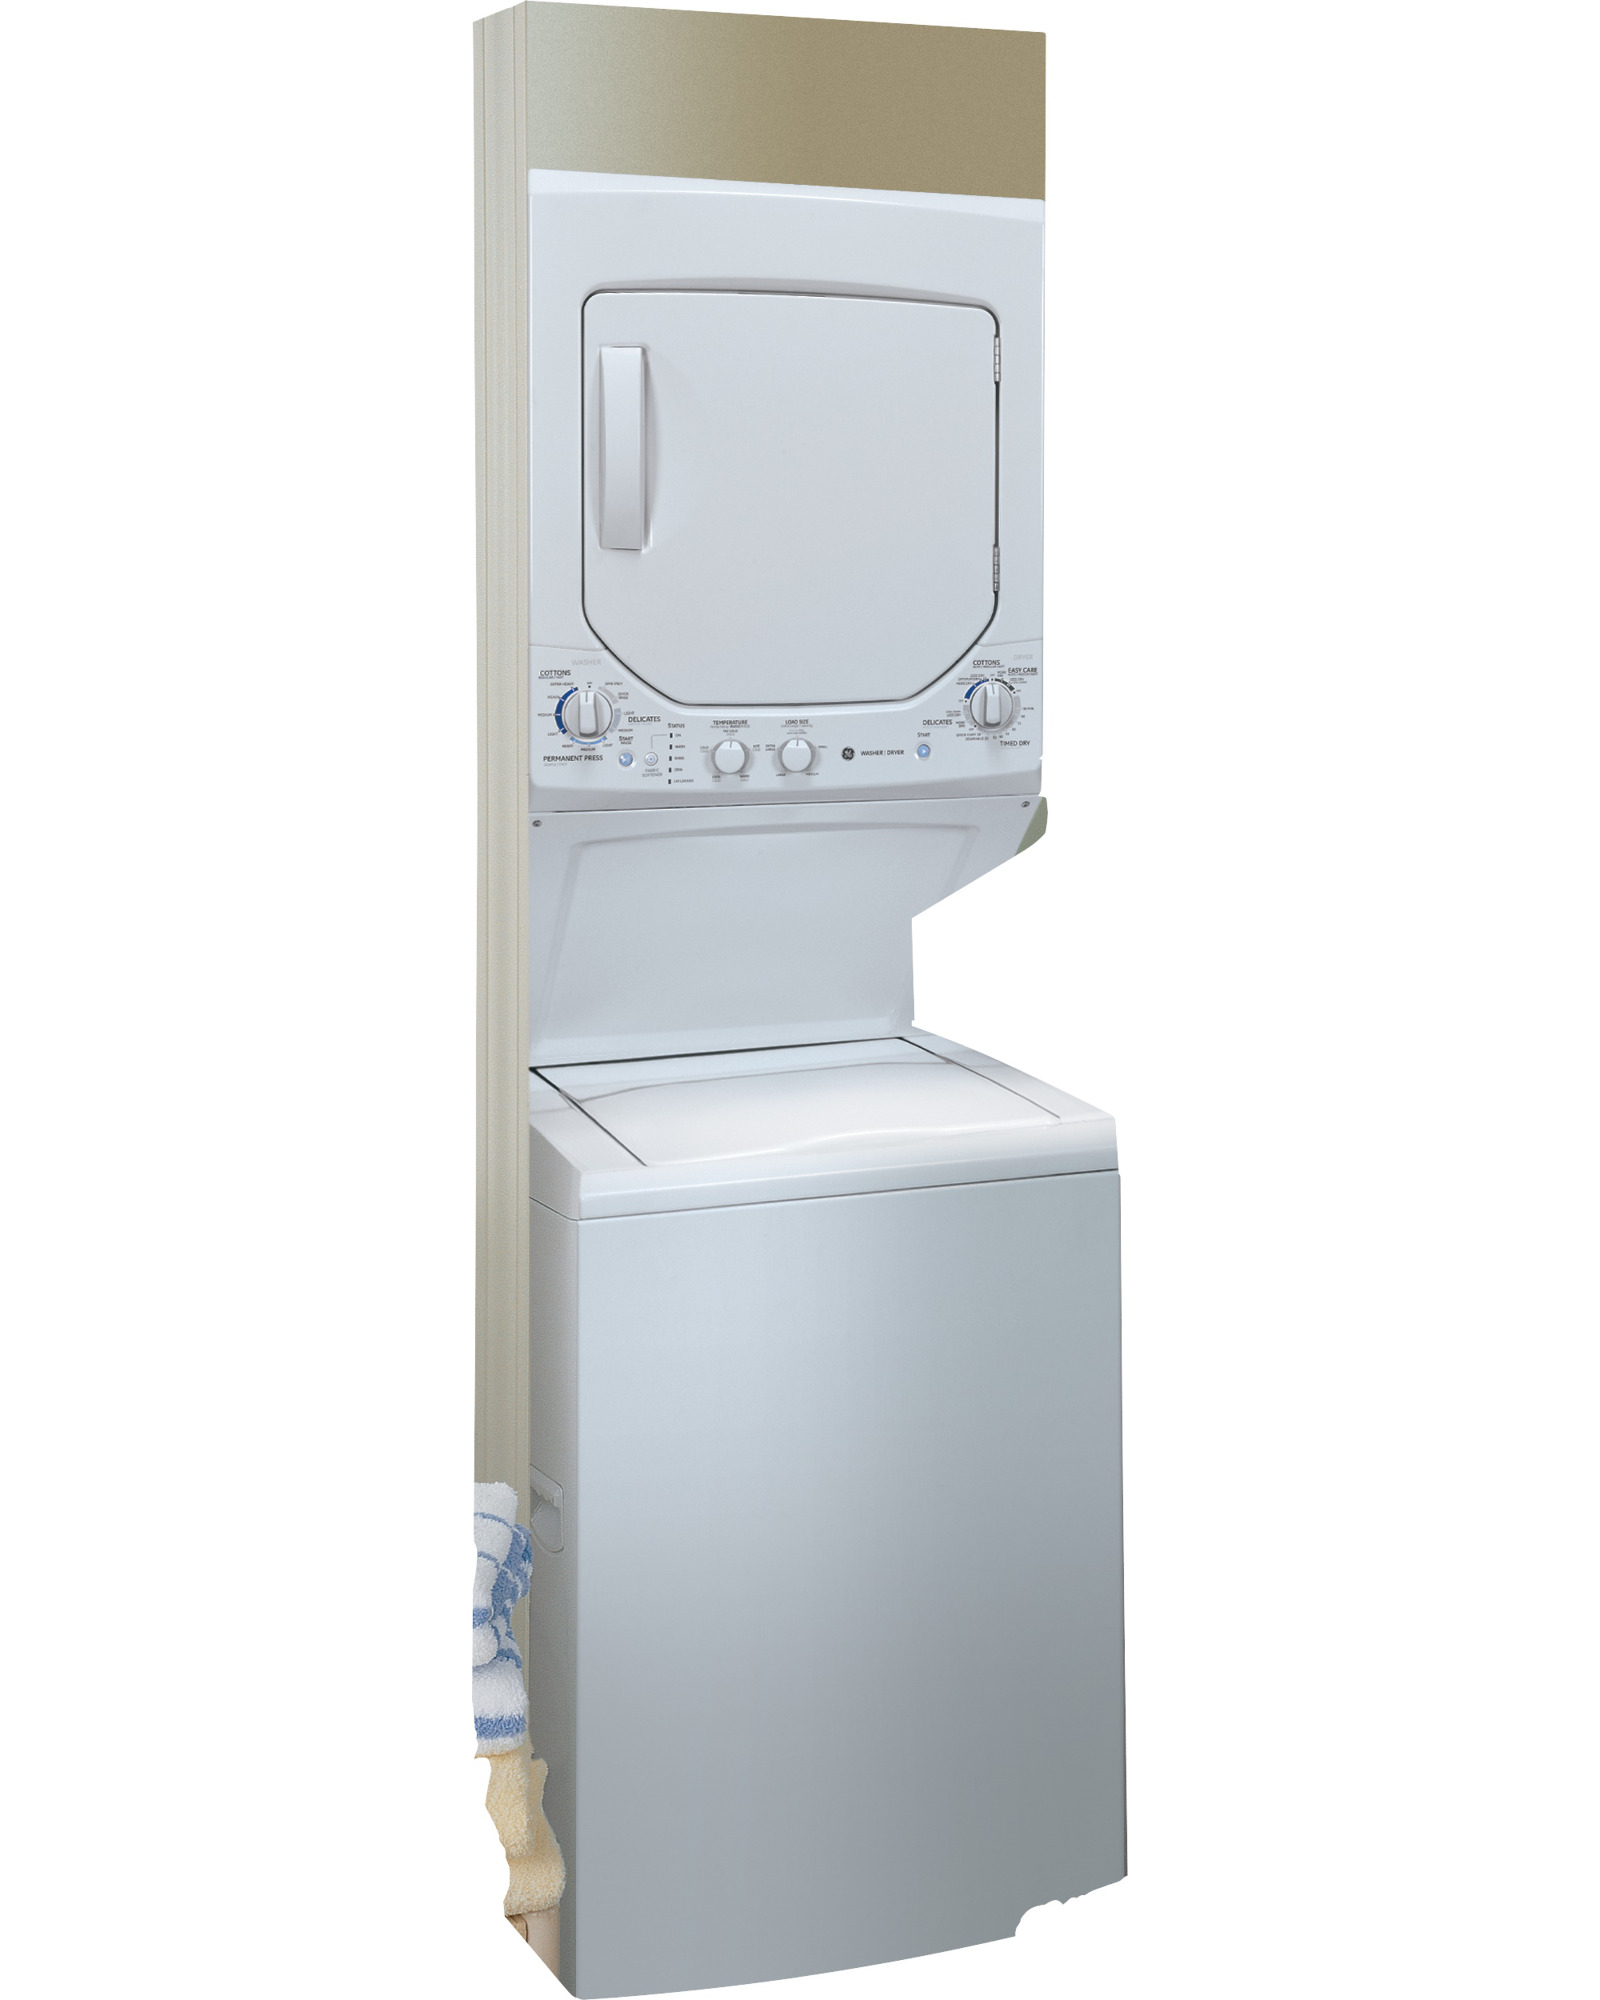 """GE Appliances GUD24ESSJWW Spacemaker® 24"""" 2.0 cu. ft. Electric Stacked Laundry Unit - White"""